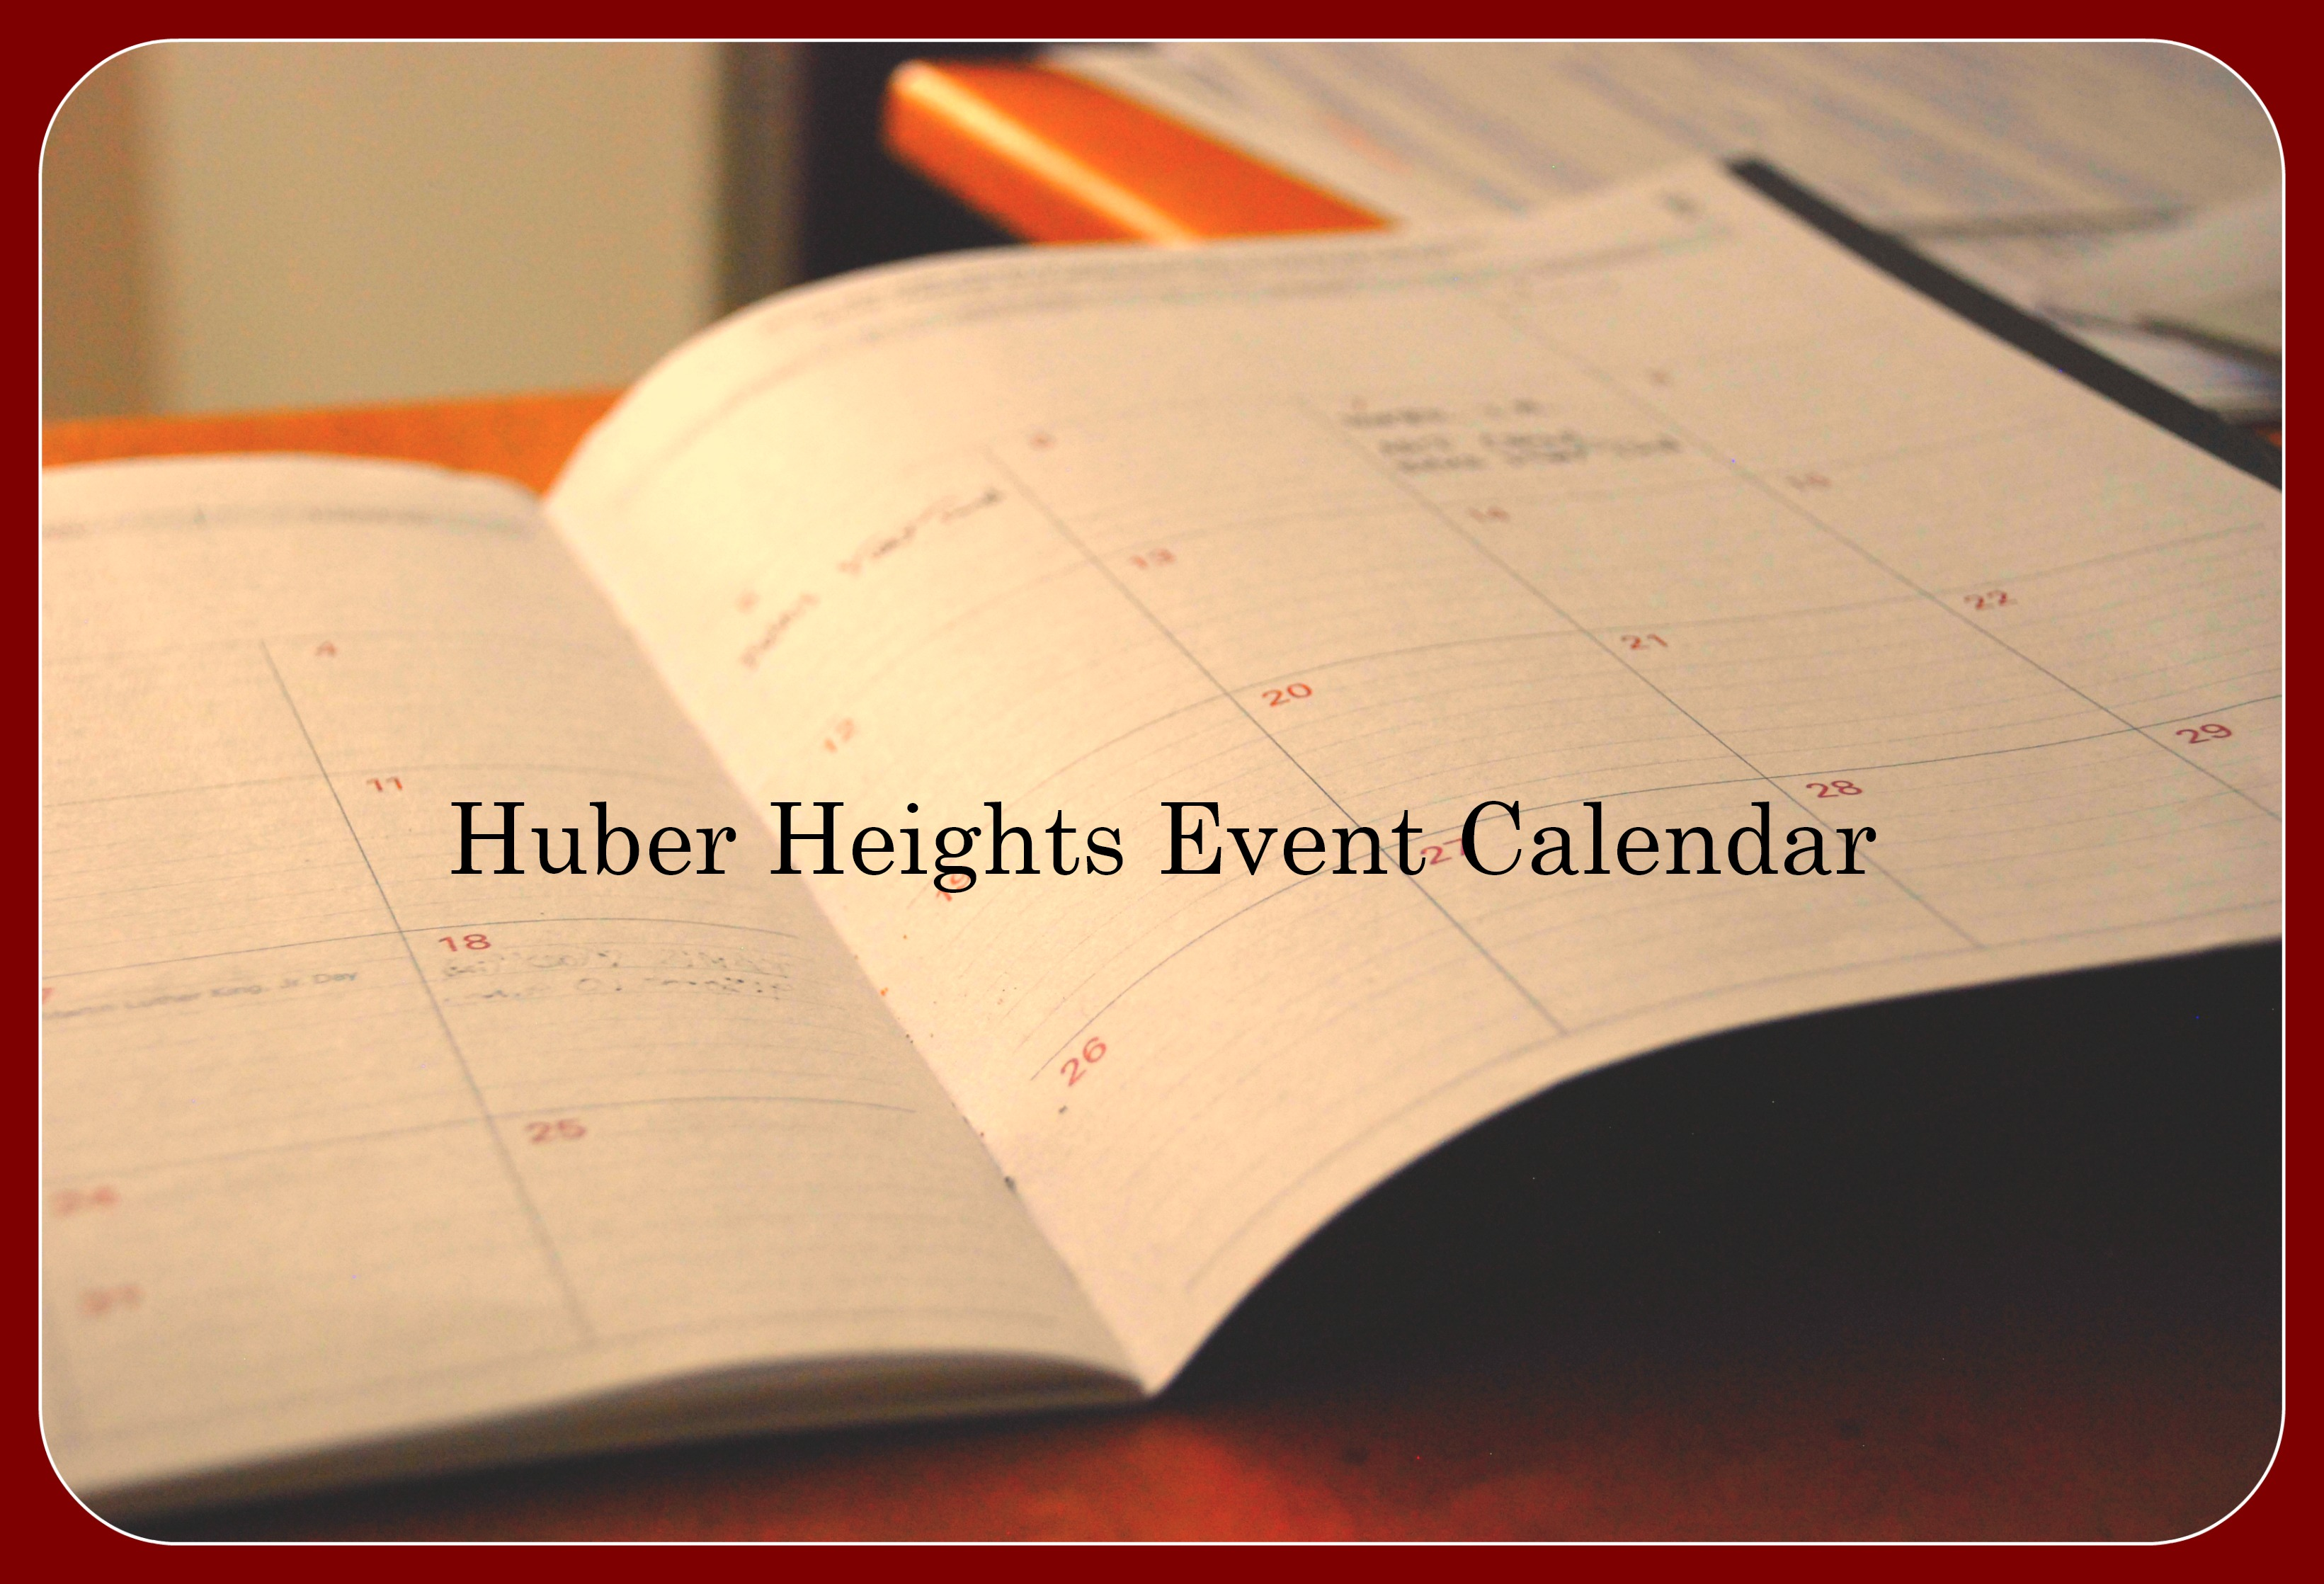 Huber Heights Event Calendar